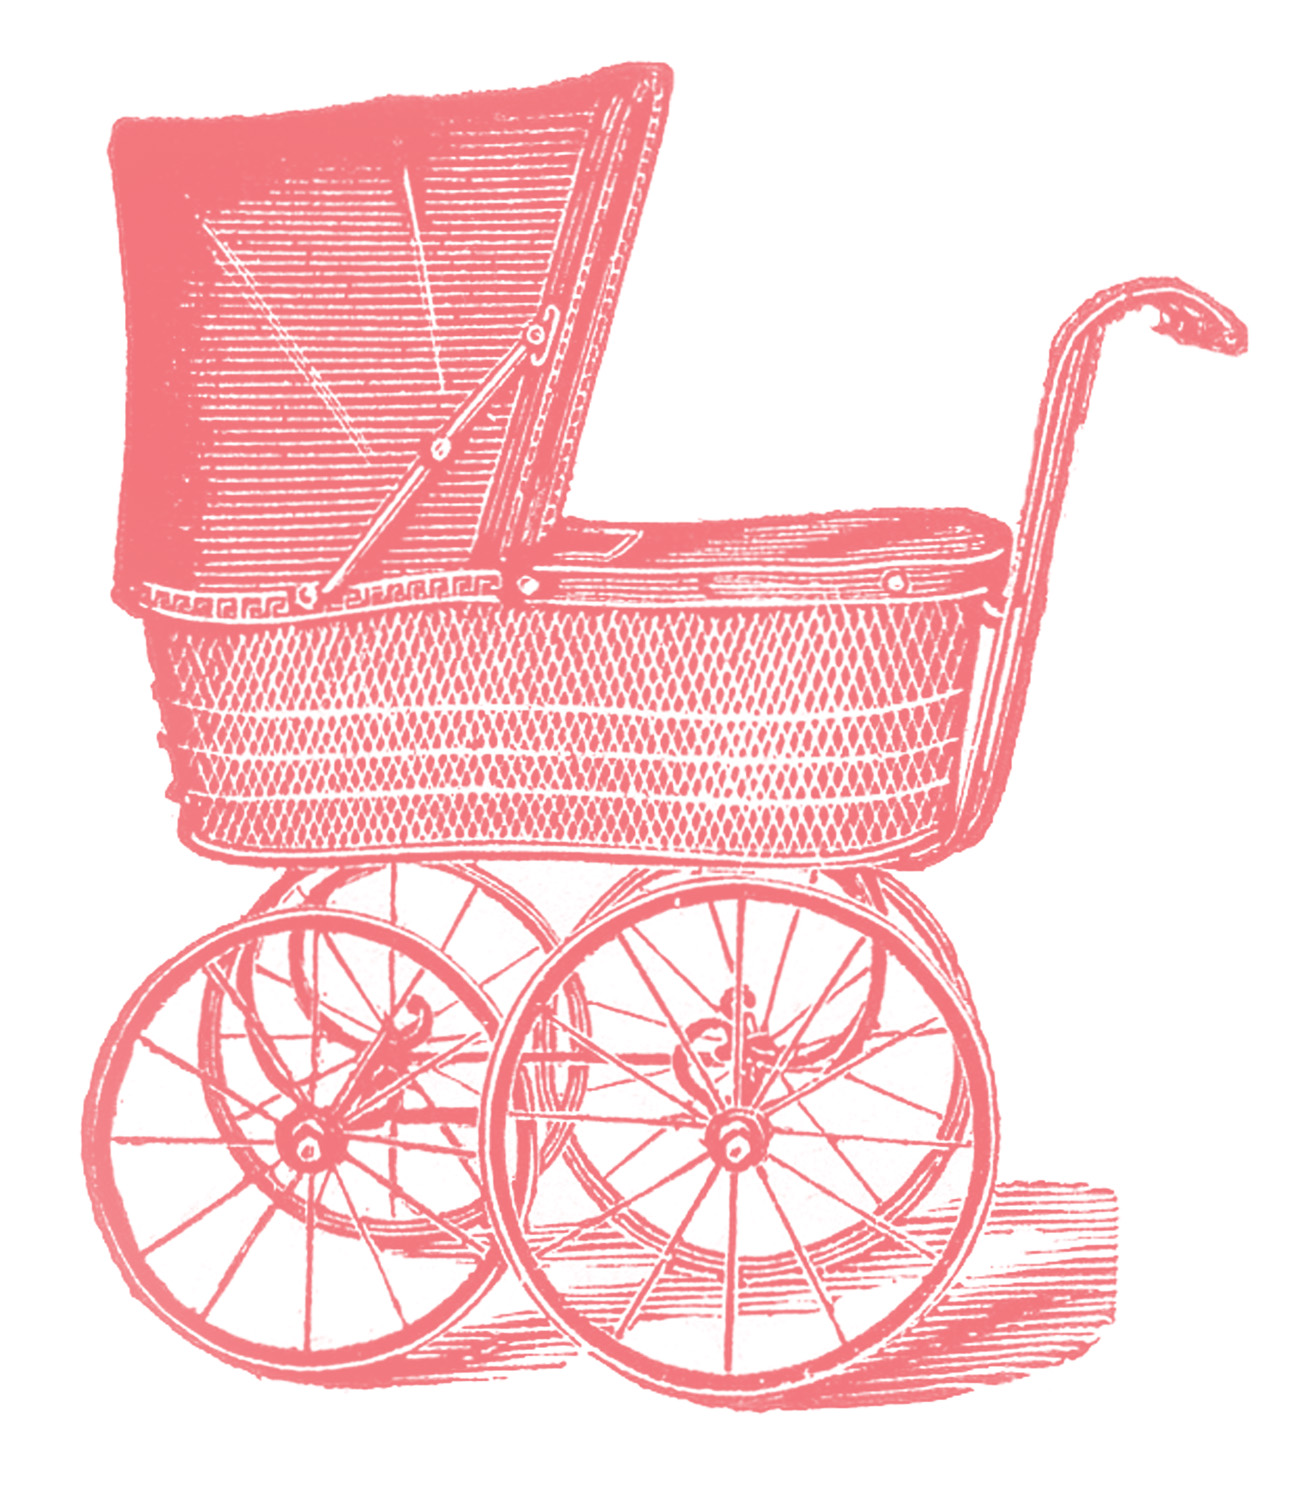 82e691143 Baby Carriage Vintage Image Graphicsfairypk